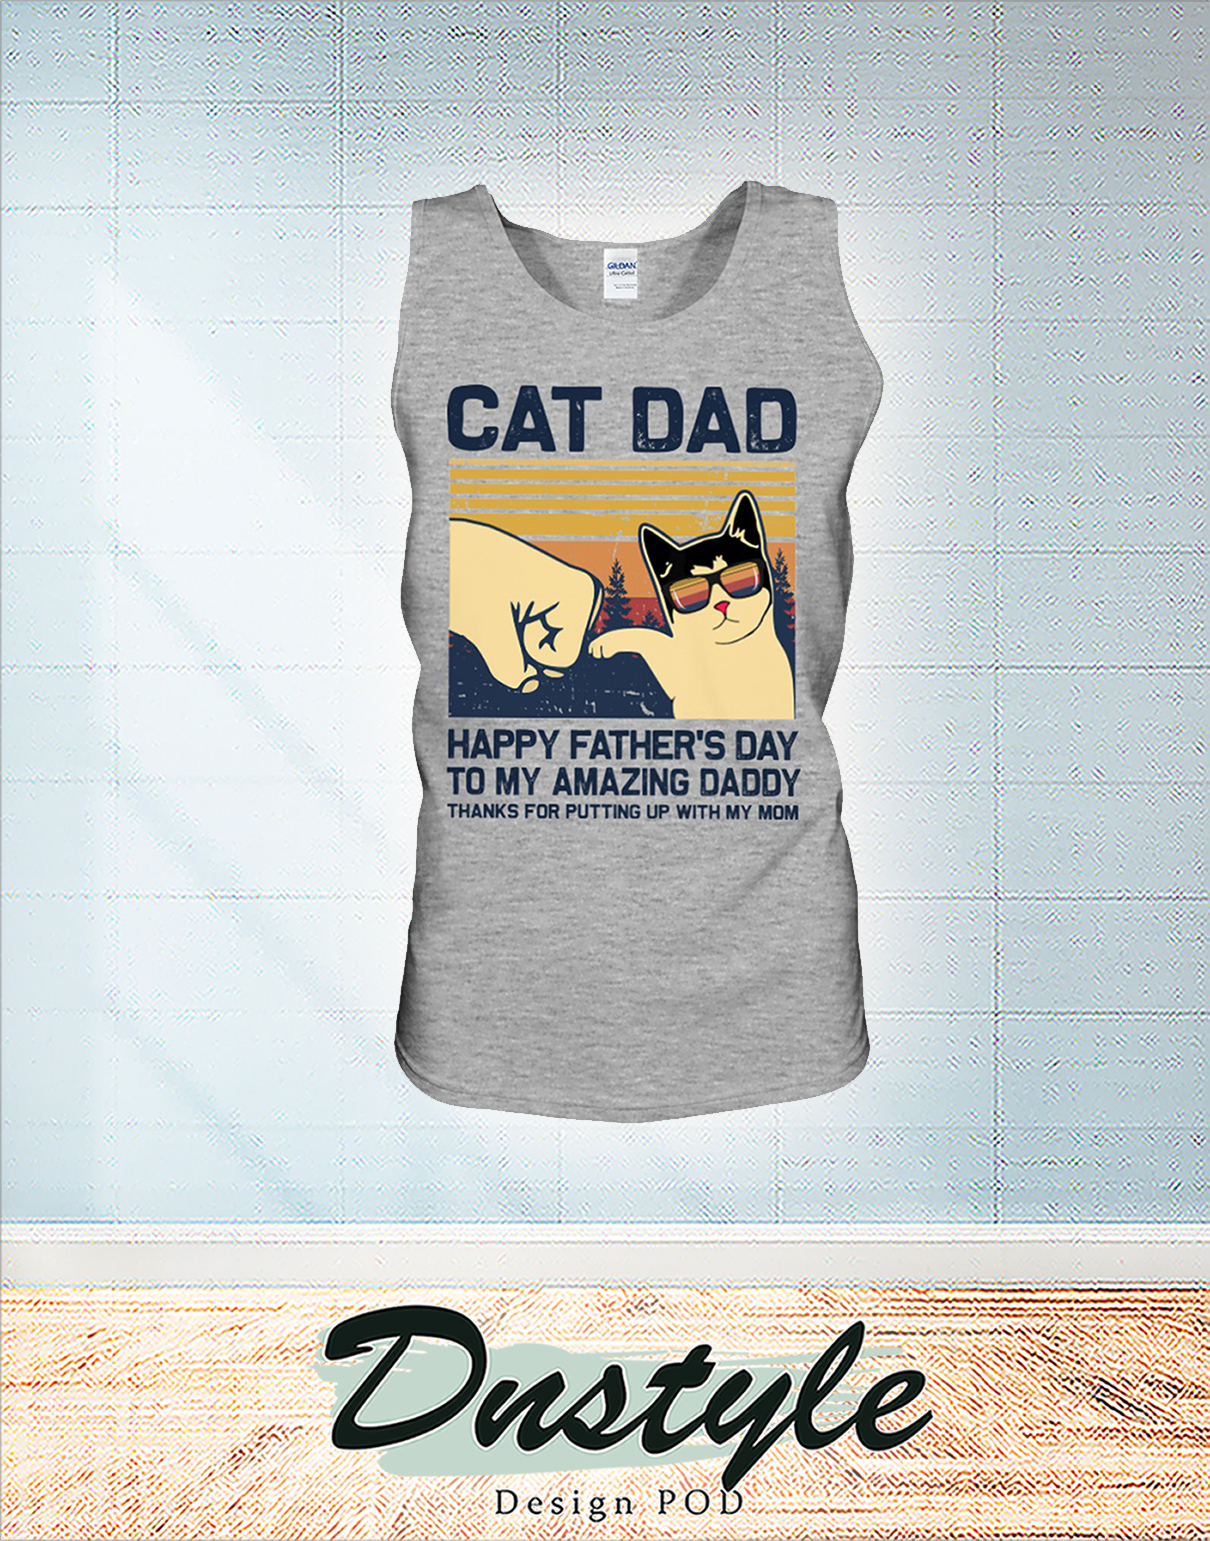 Vintage Cat dad happy father's day to amazing daddy tank